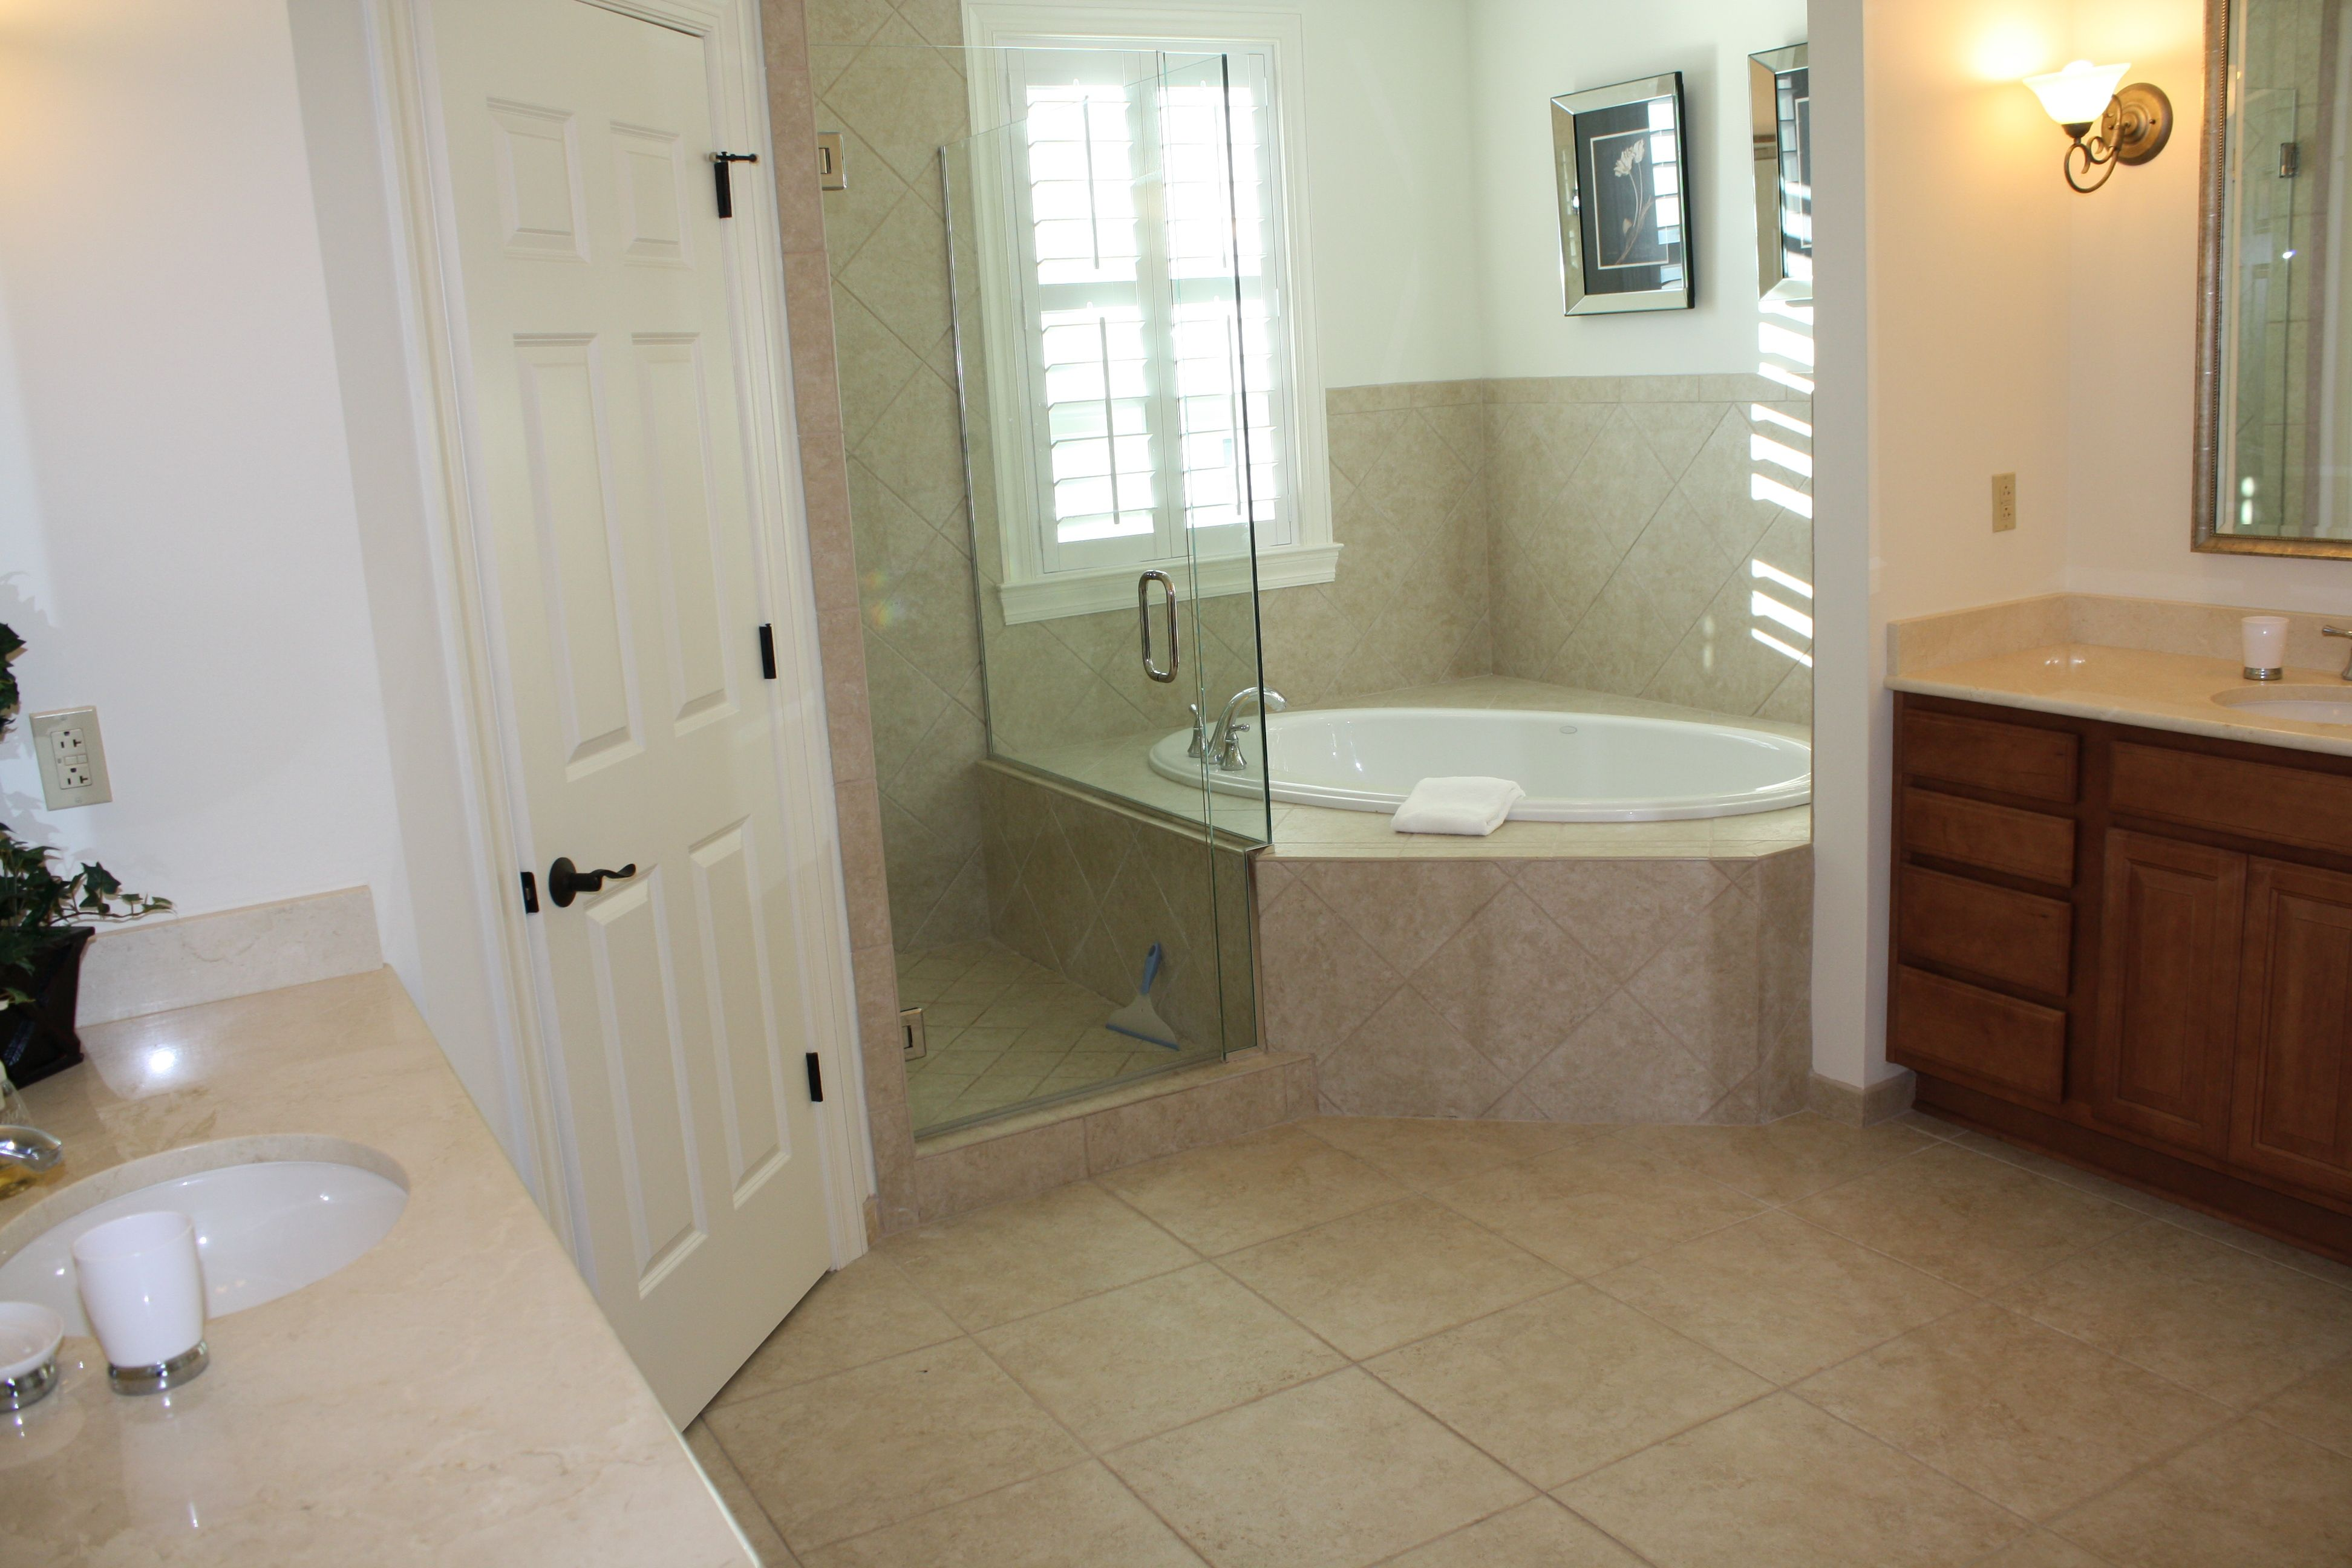 Where glass is wall with built in shelves for towels shallow so as ...